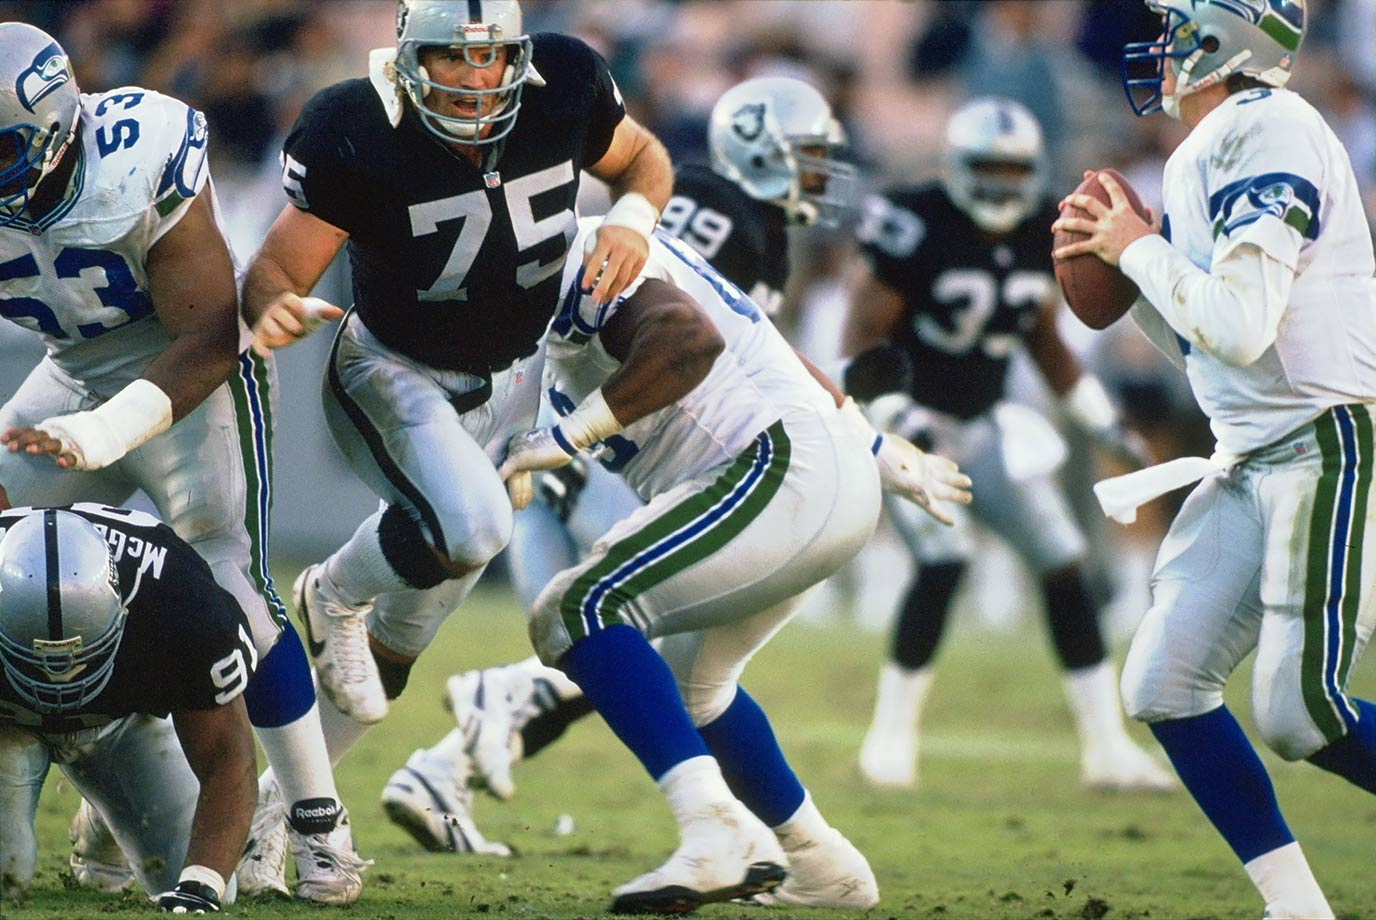 Dec. 12, 1993 — Los Angeles Raiders vs. Seattle Seahawks